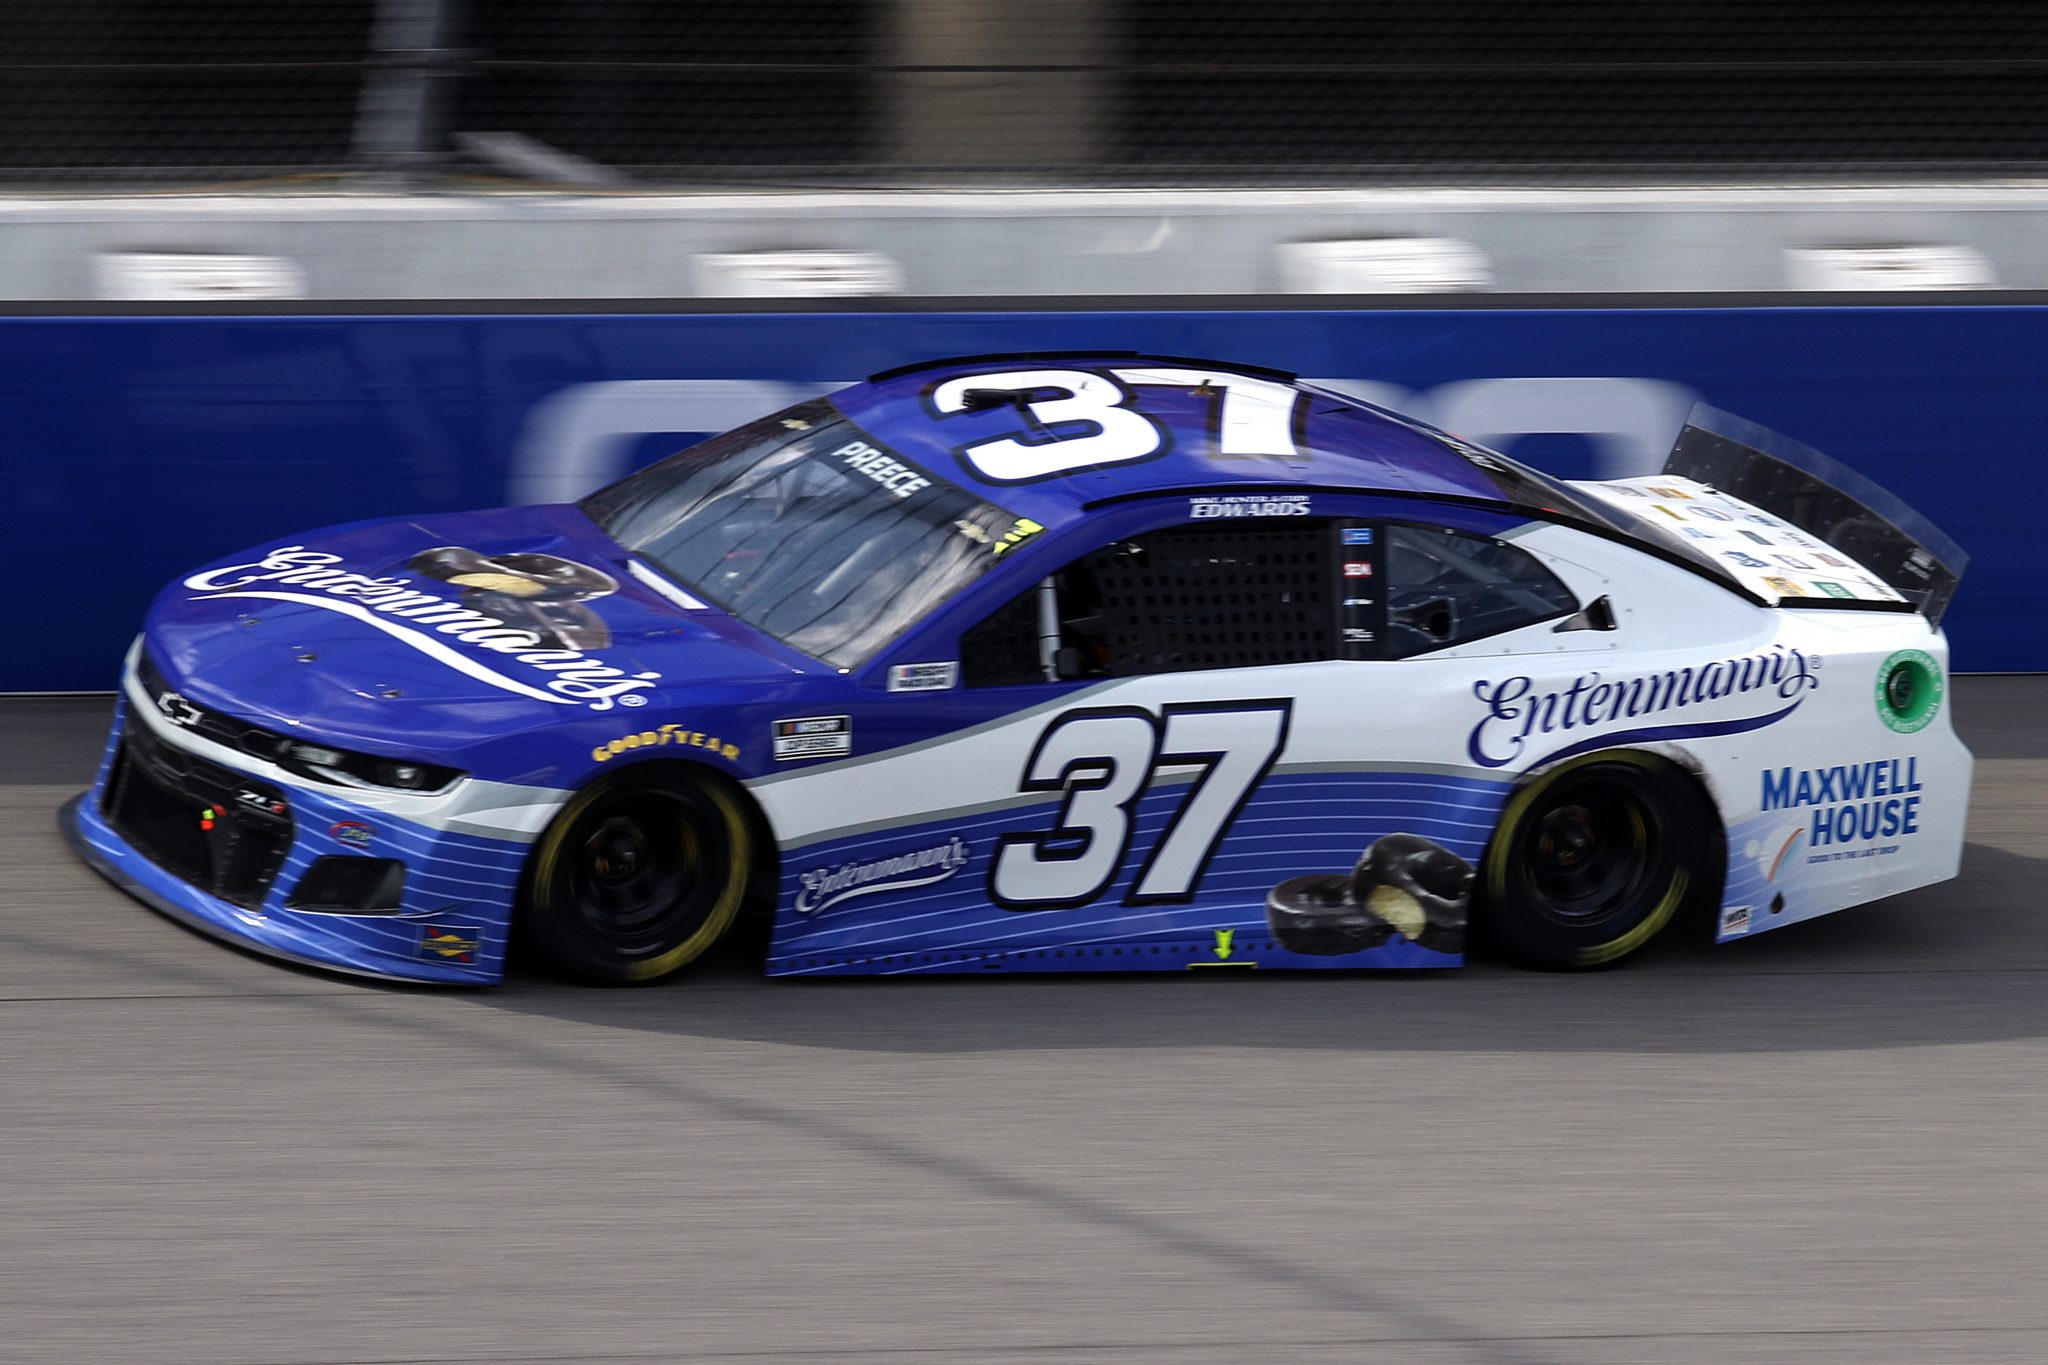 BROOKLYN, MICHIGAN - AUGUST 22: Ryan Preece, driver of the #37 Entenmann's Chevrolet, drives during the NASCAR Cup Series FireKeepers Casino 400 at Michigan International Speedway on August 22, 2021 in Brooklyn, Michigan. (Photo by Sean Gardner/Getty Images) | Getty Images